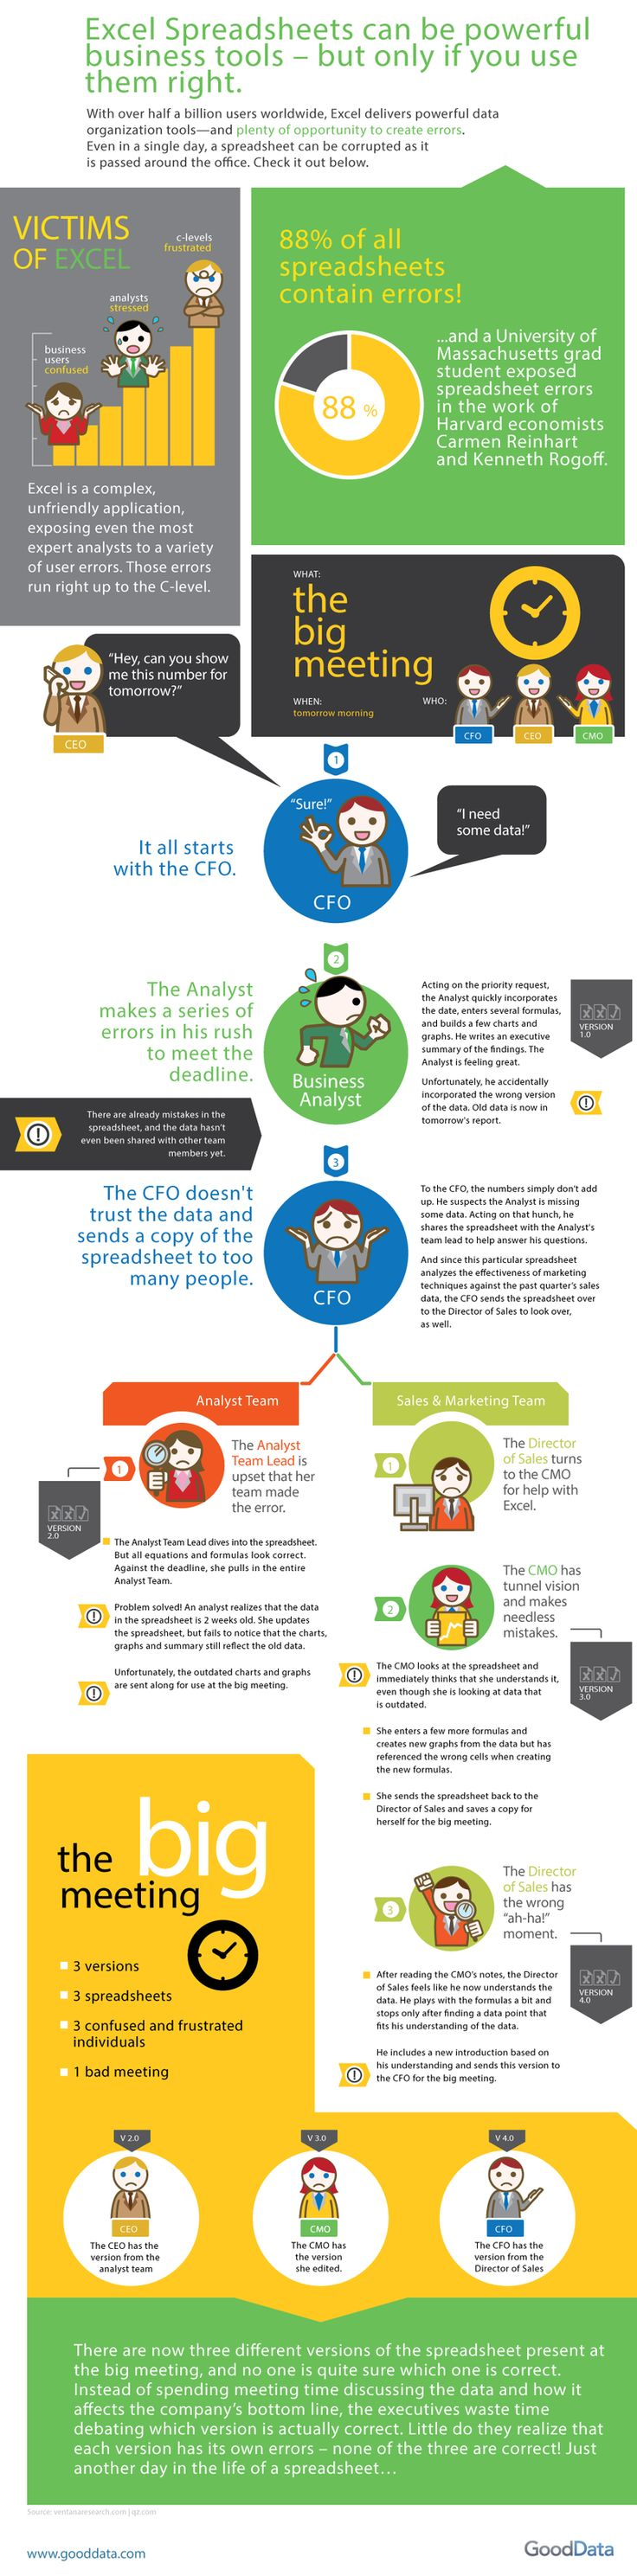 What Can Be The Potential Danger Of Excel Spreadsheets Data Errors? #infographic